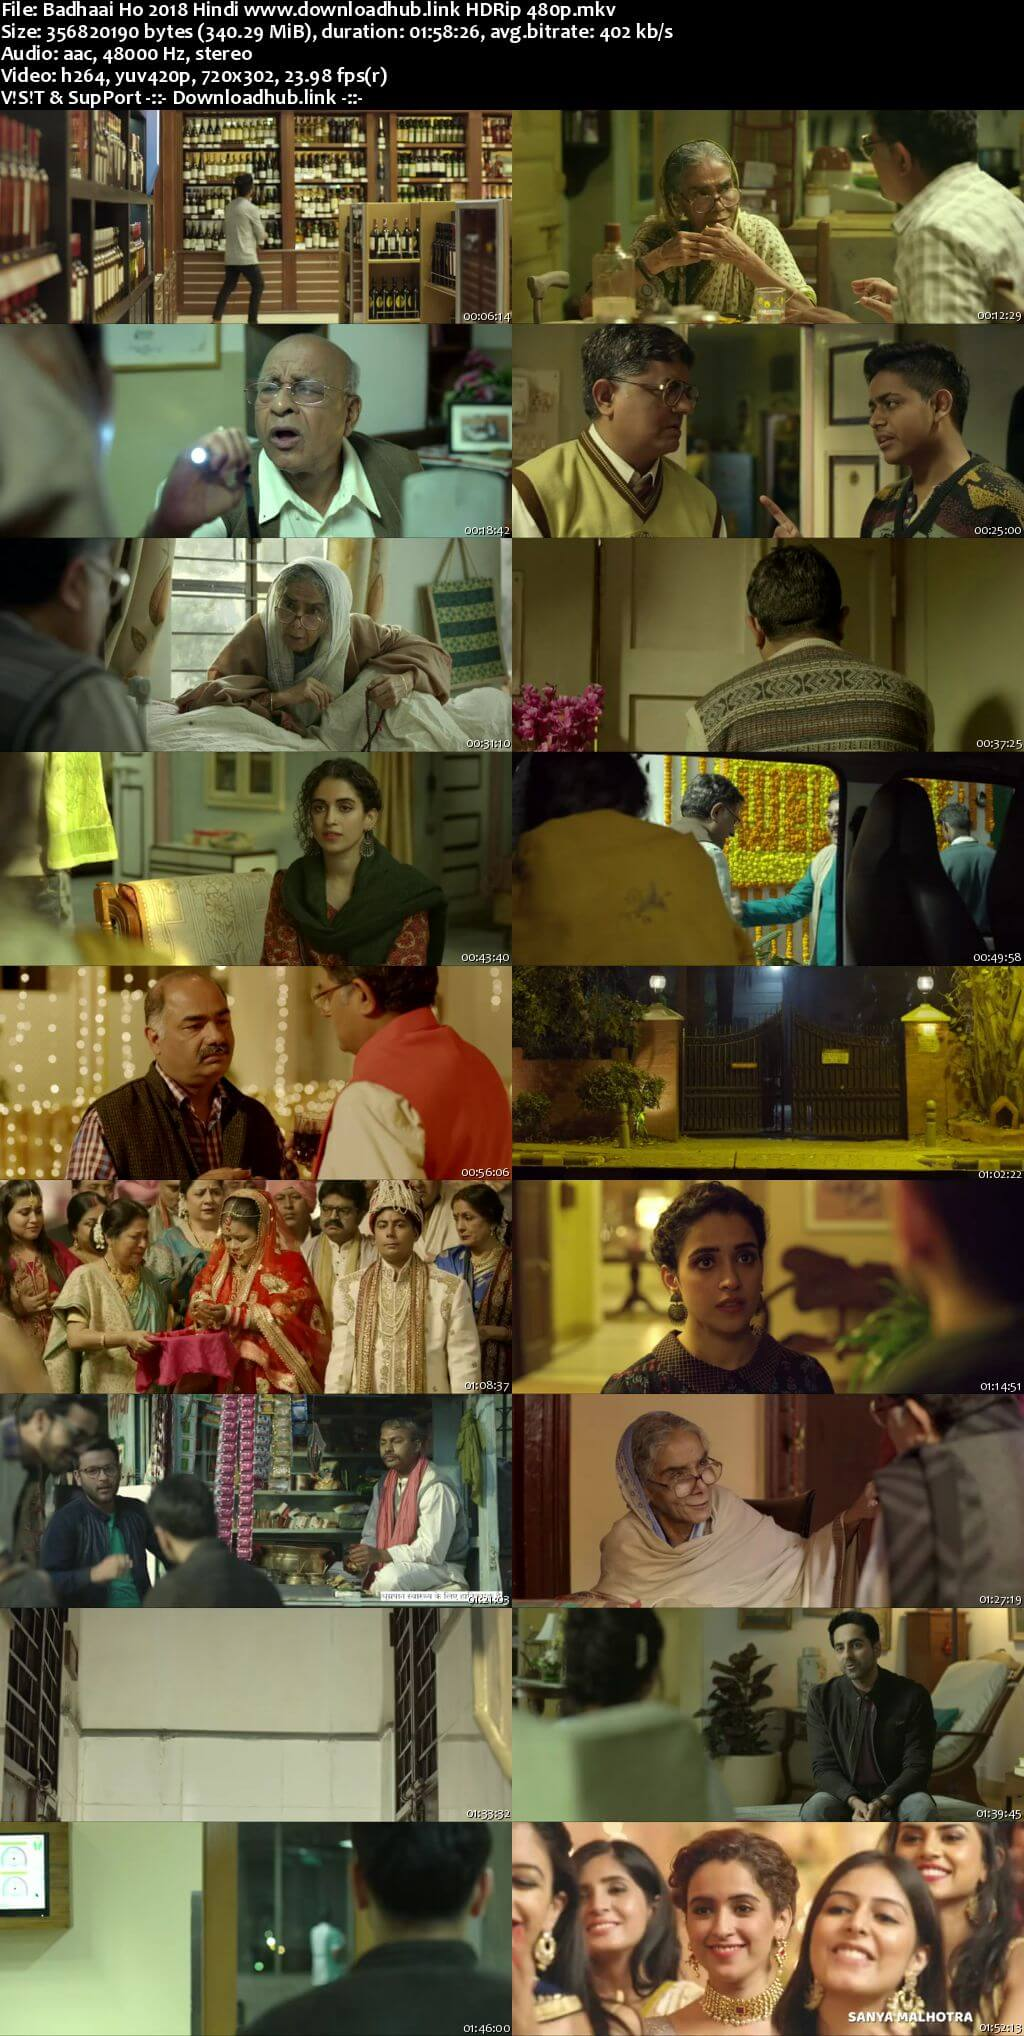 Badhaai Ho 2018 Hindi 300MB HDRip 480p